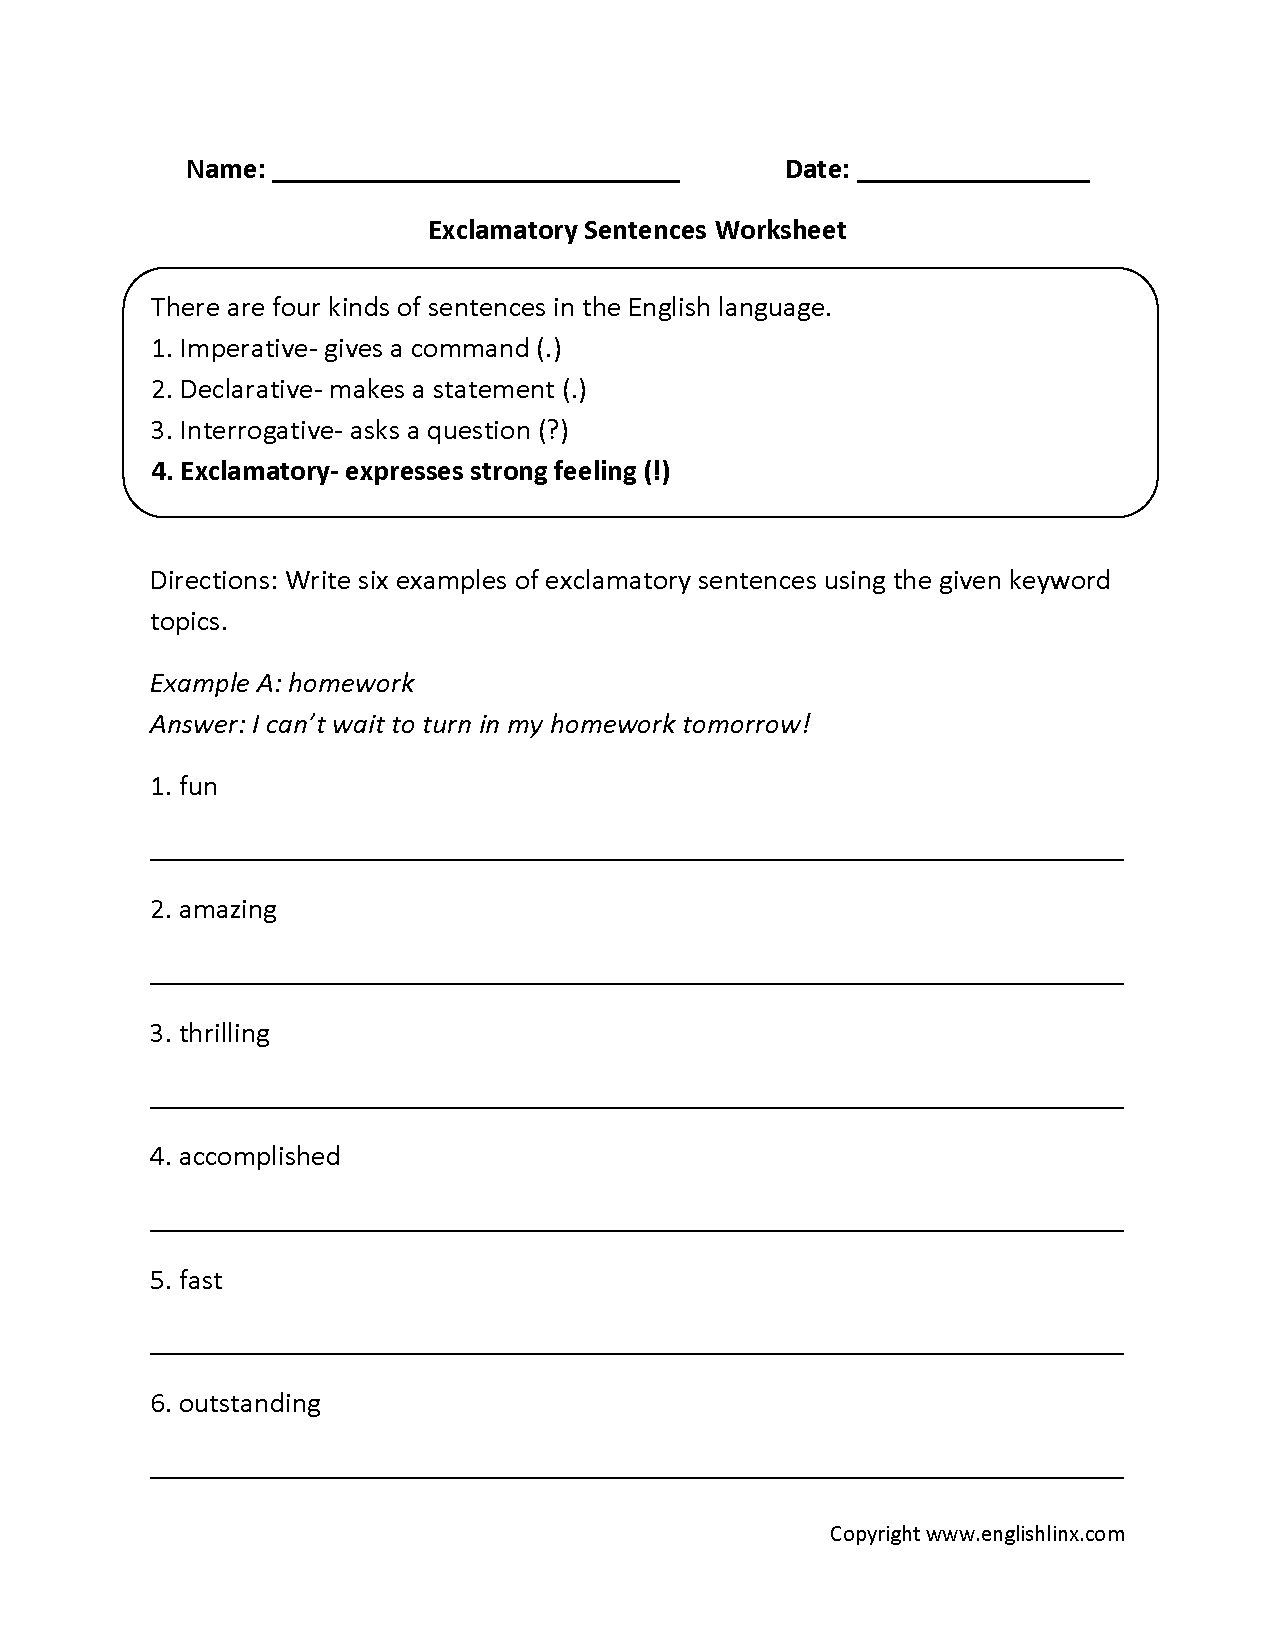 Exclamatory Types Of Sentences Worksheets